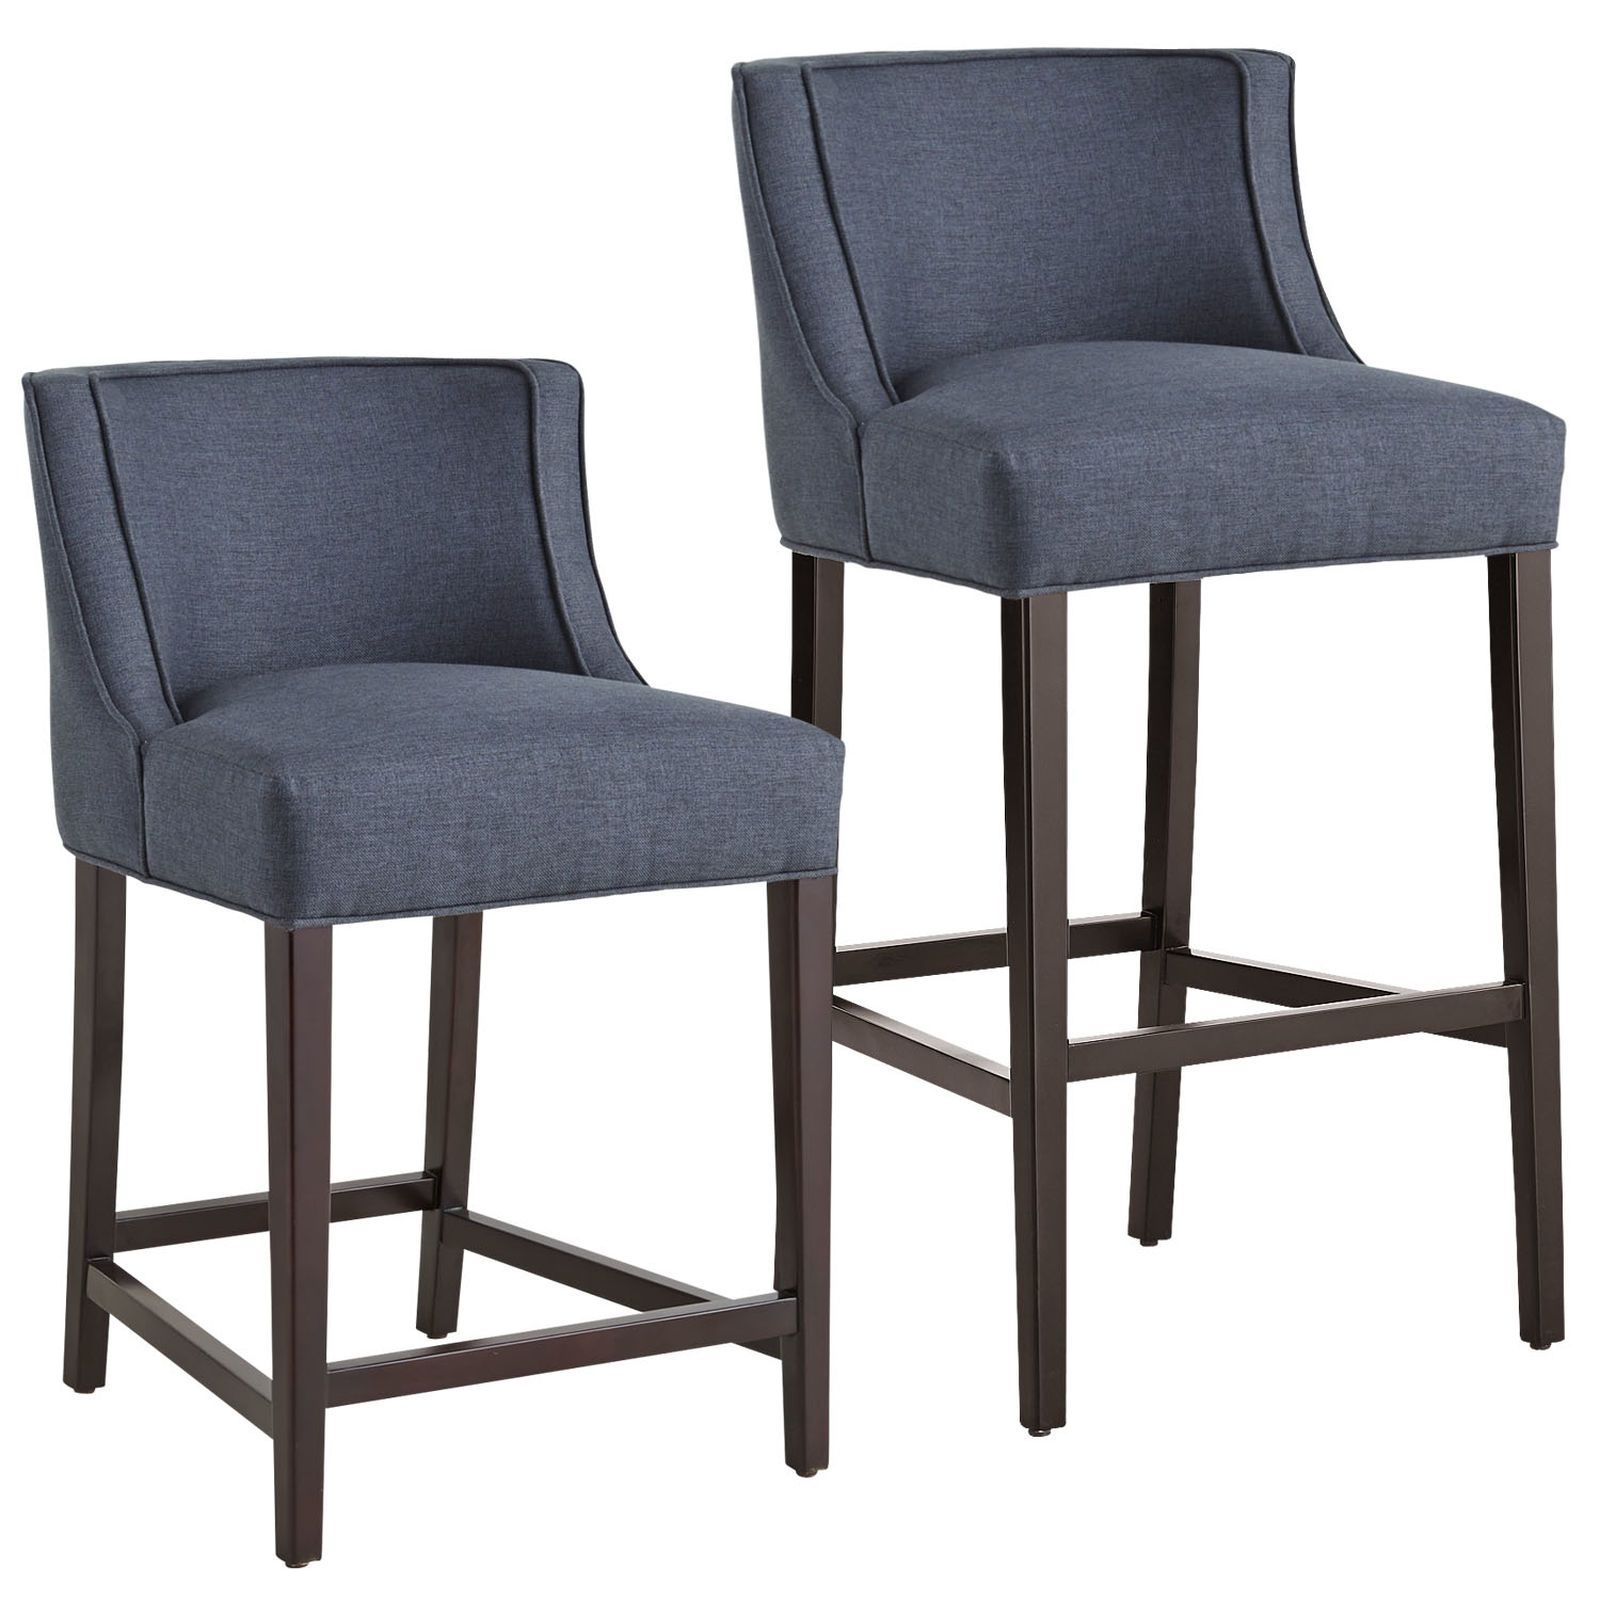 Eva Is Like A Warm Hug From Your Best Dressed Friend Upholstered To The Nines In A Navy Tweed Like Polyes Upholstered Bar Stools Counter Bar Stools Bar Stools